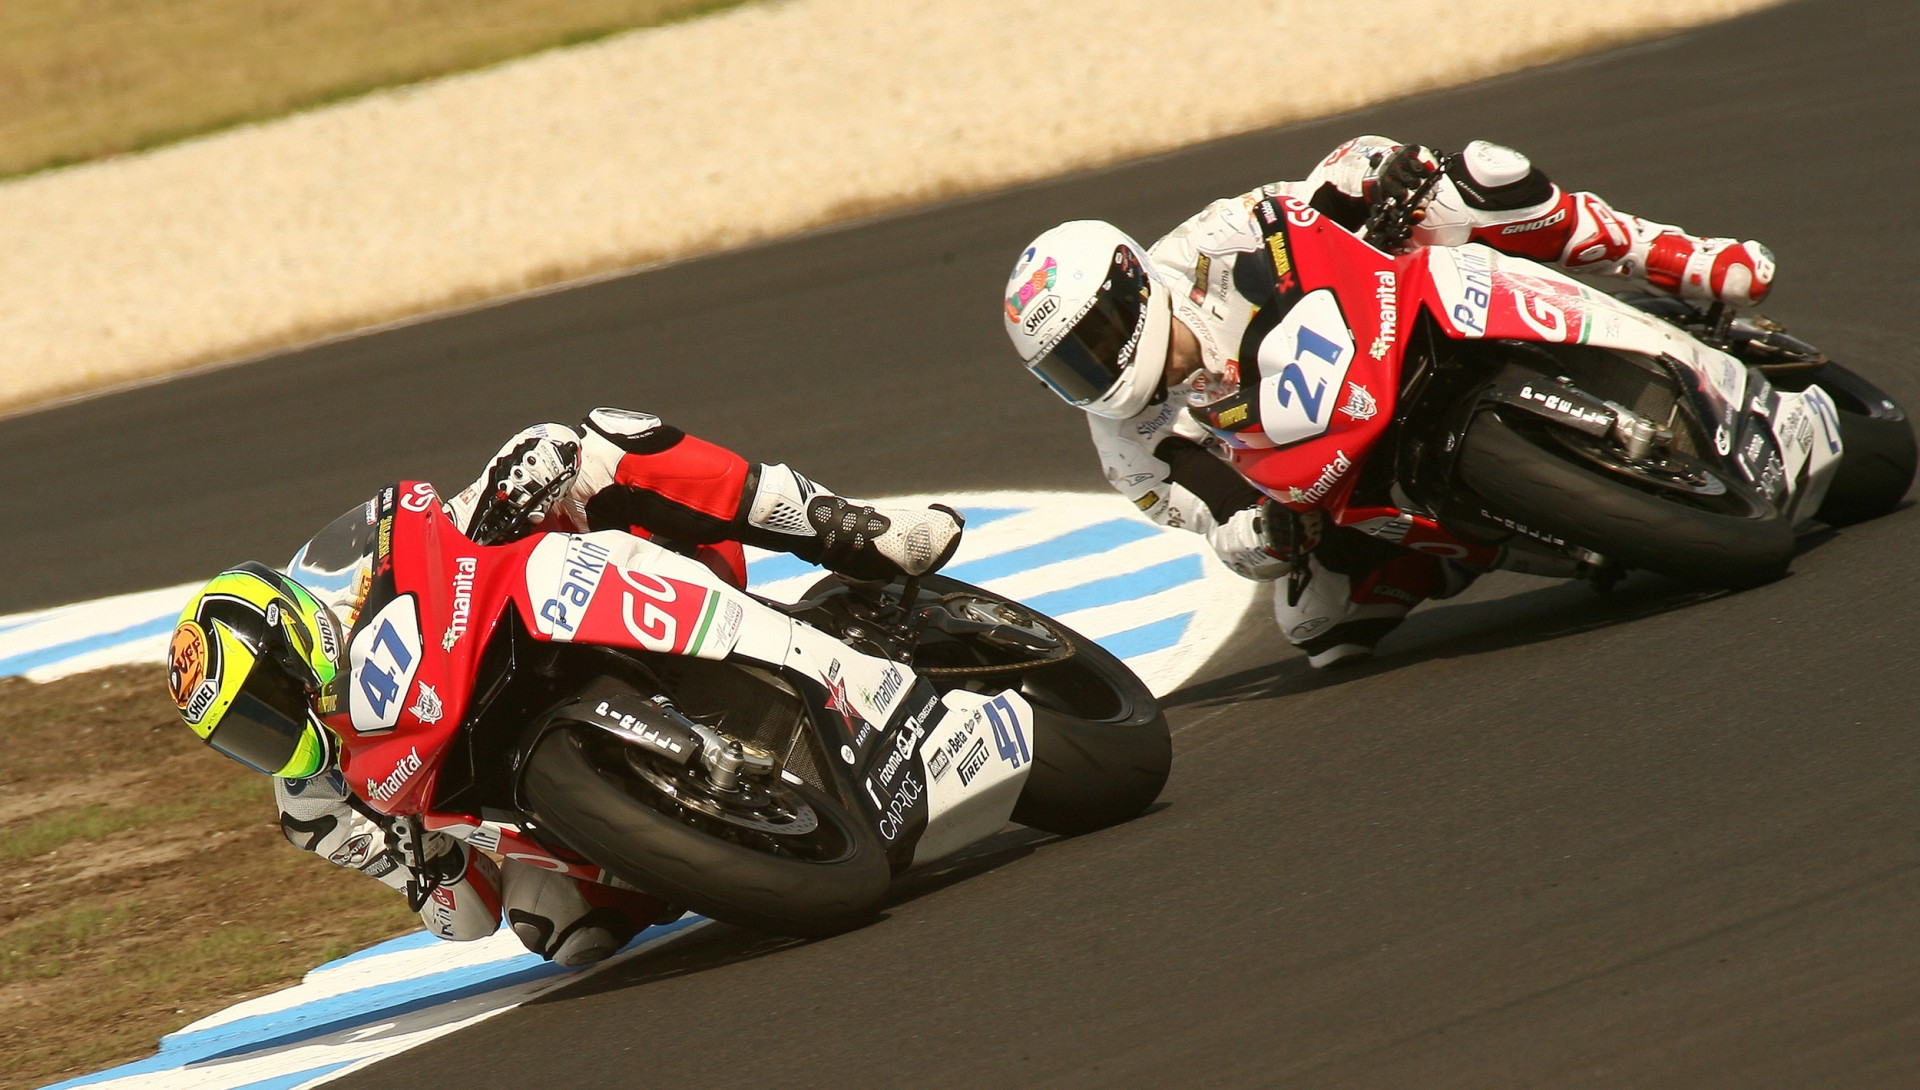 Racing Team SBK